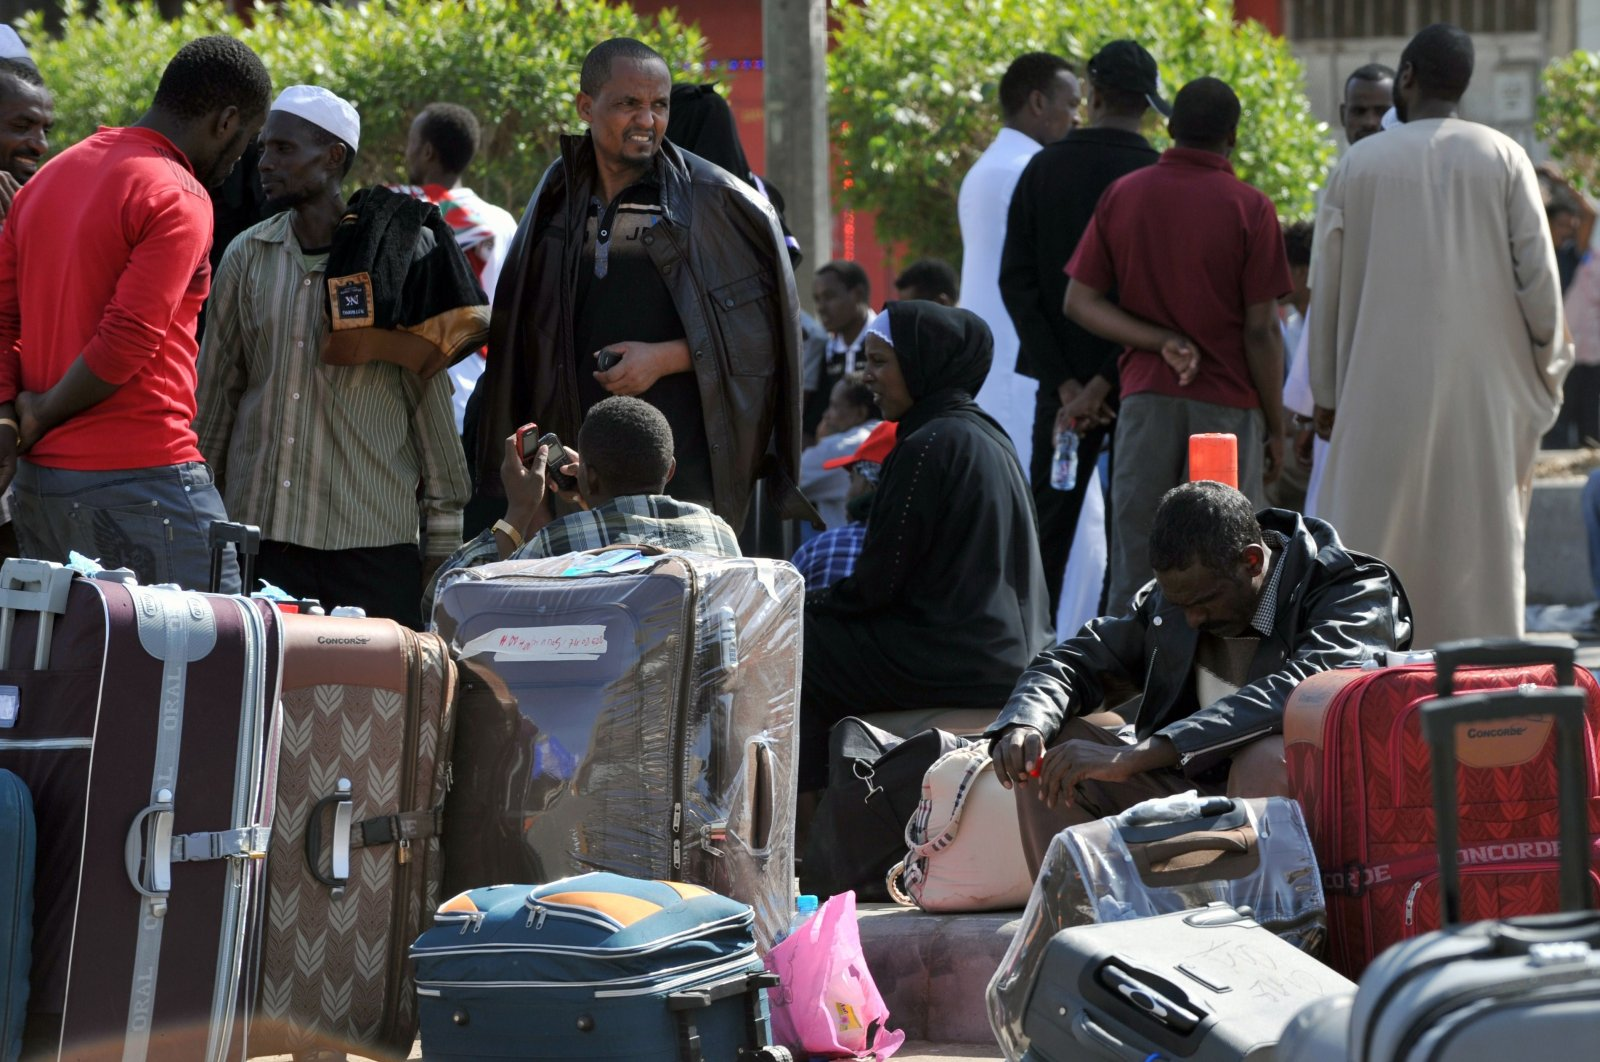 Foreign workers wait with their belongings before boarding police buses transferring them to an assembly center prior to their deportation in Riyadh, Saudi Arabia, Nov. 12, 2013. (AFP Photo)